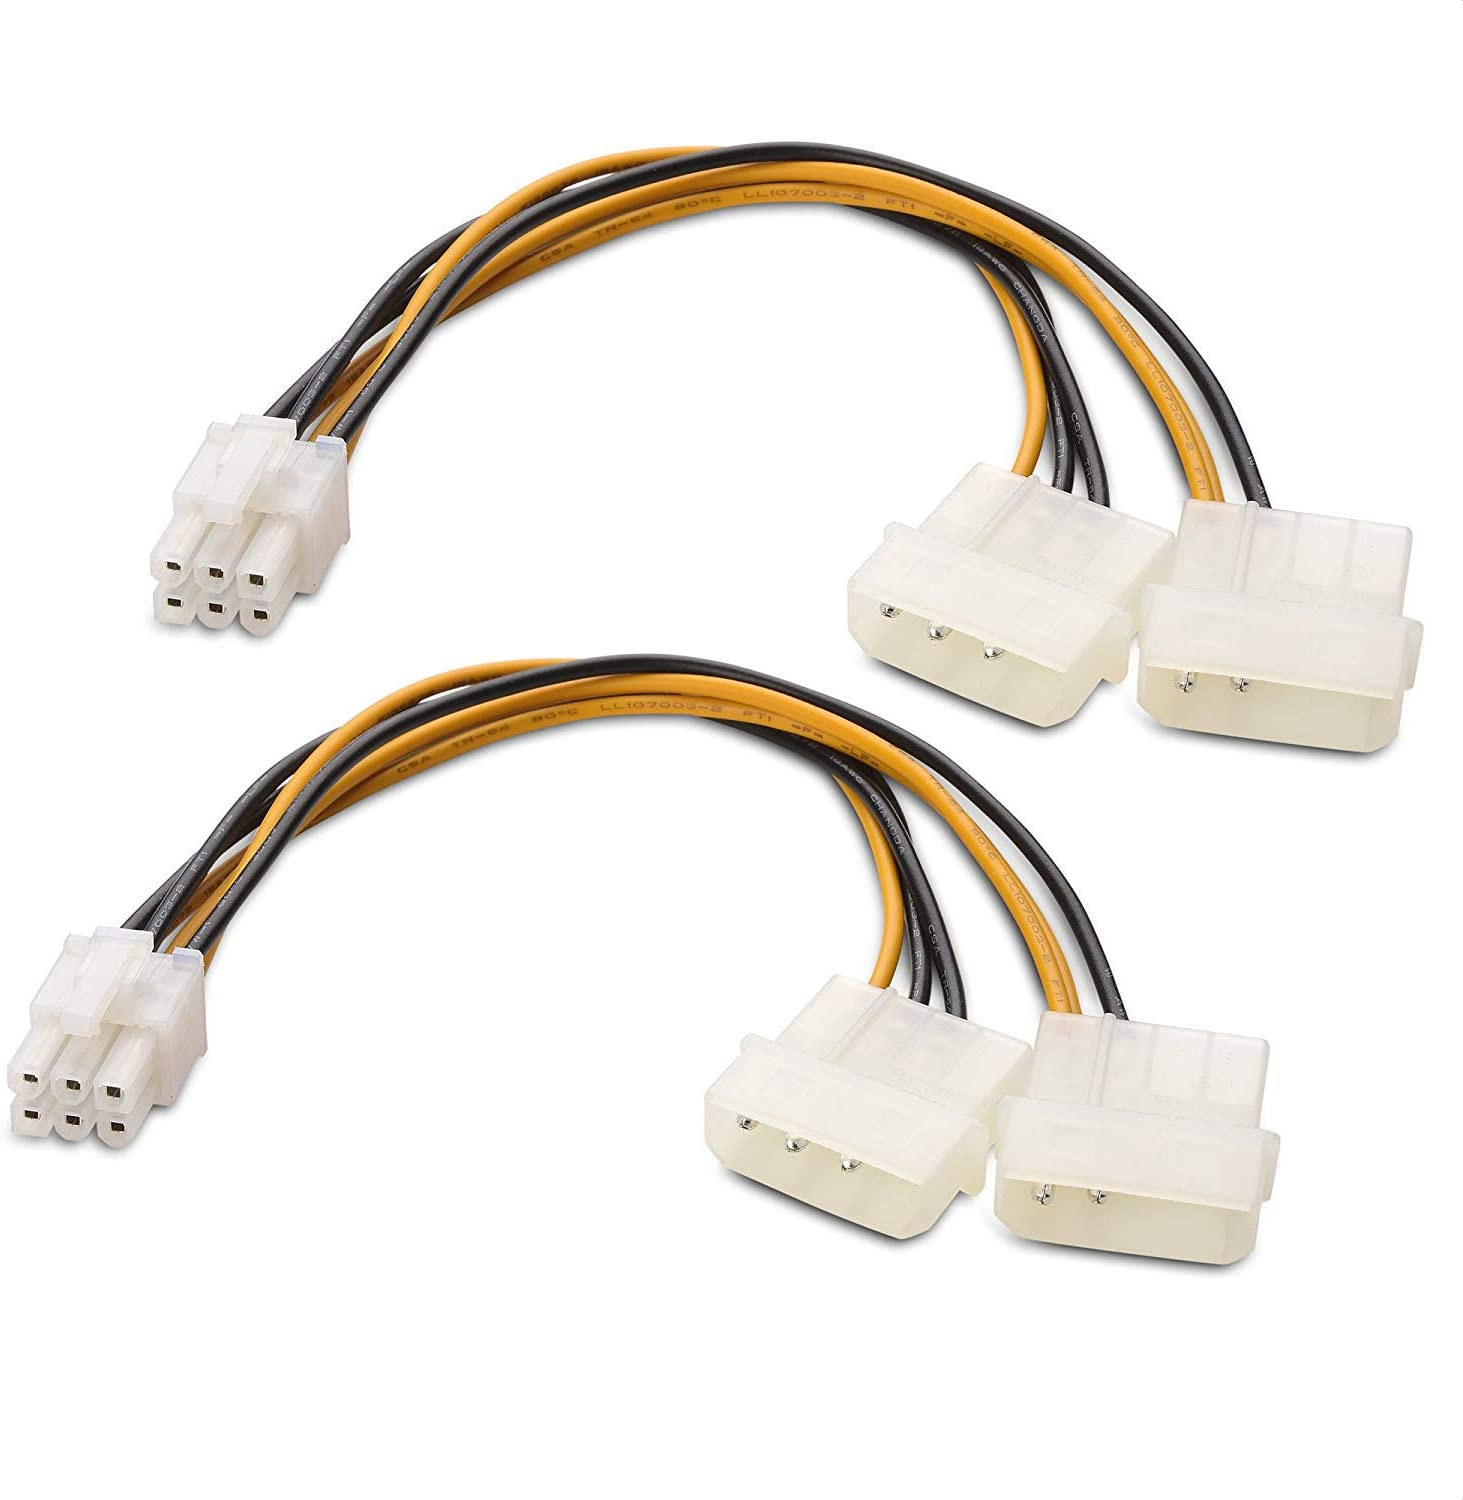 Cable Matters 2-Pack 6 Pin PCIe Splitter Cable PCIe Power Splitter 6 Inches